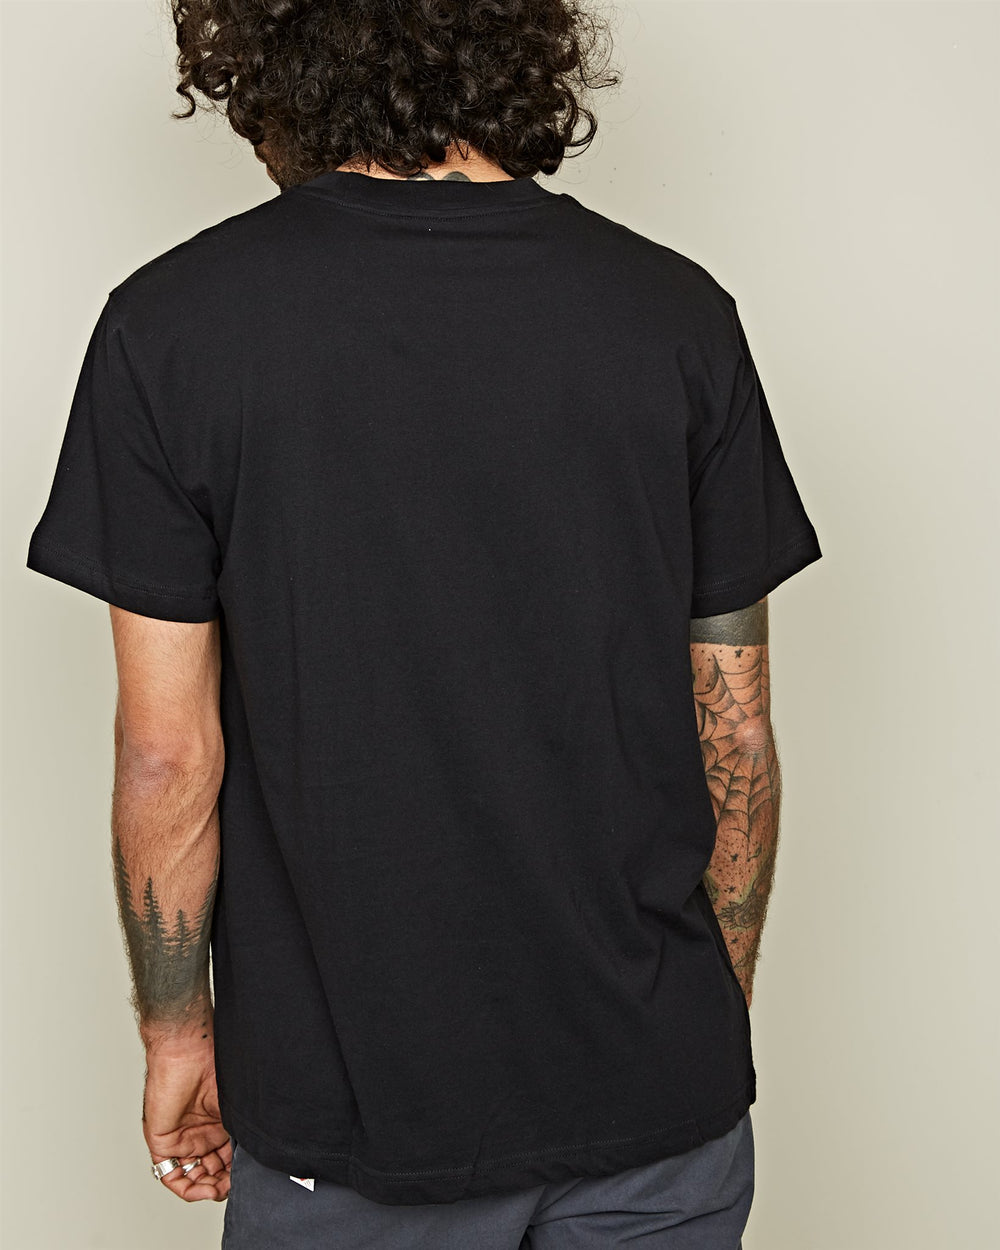 3PACK T-SHIRT BLACK